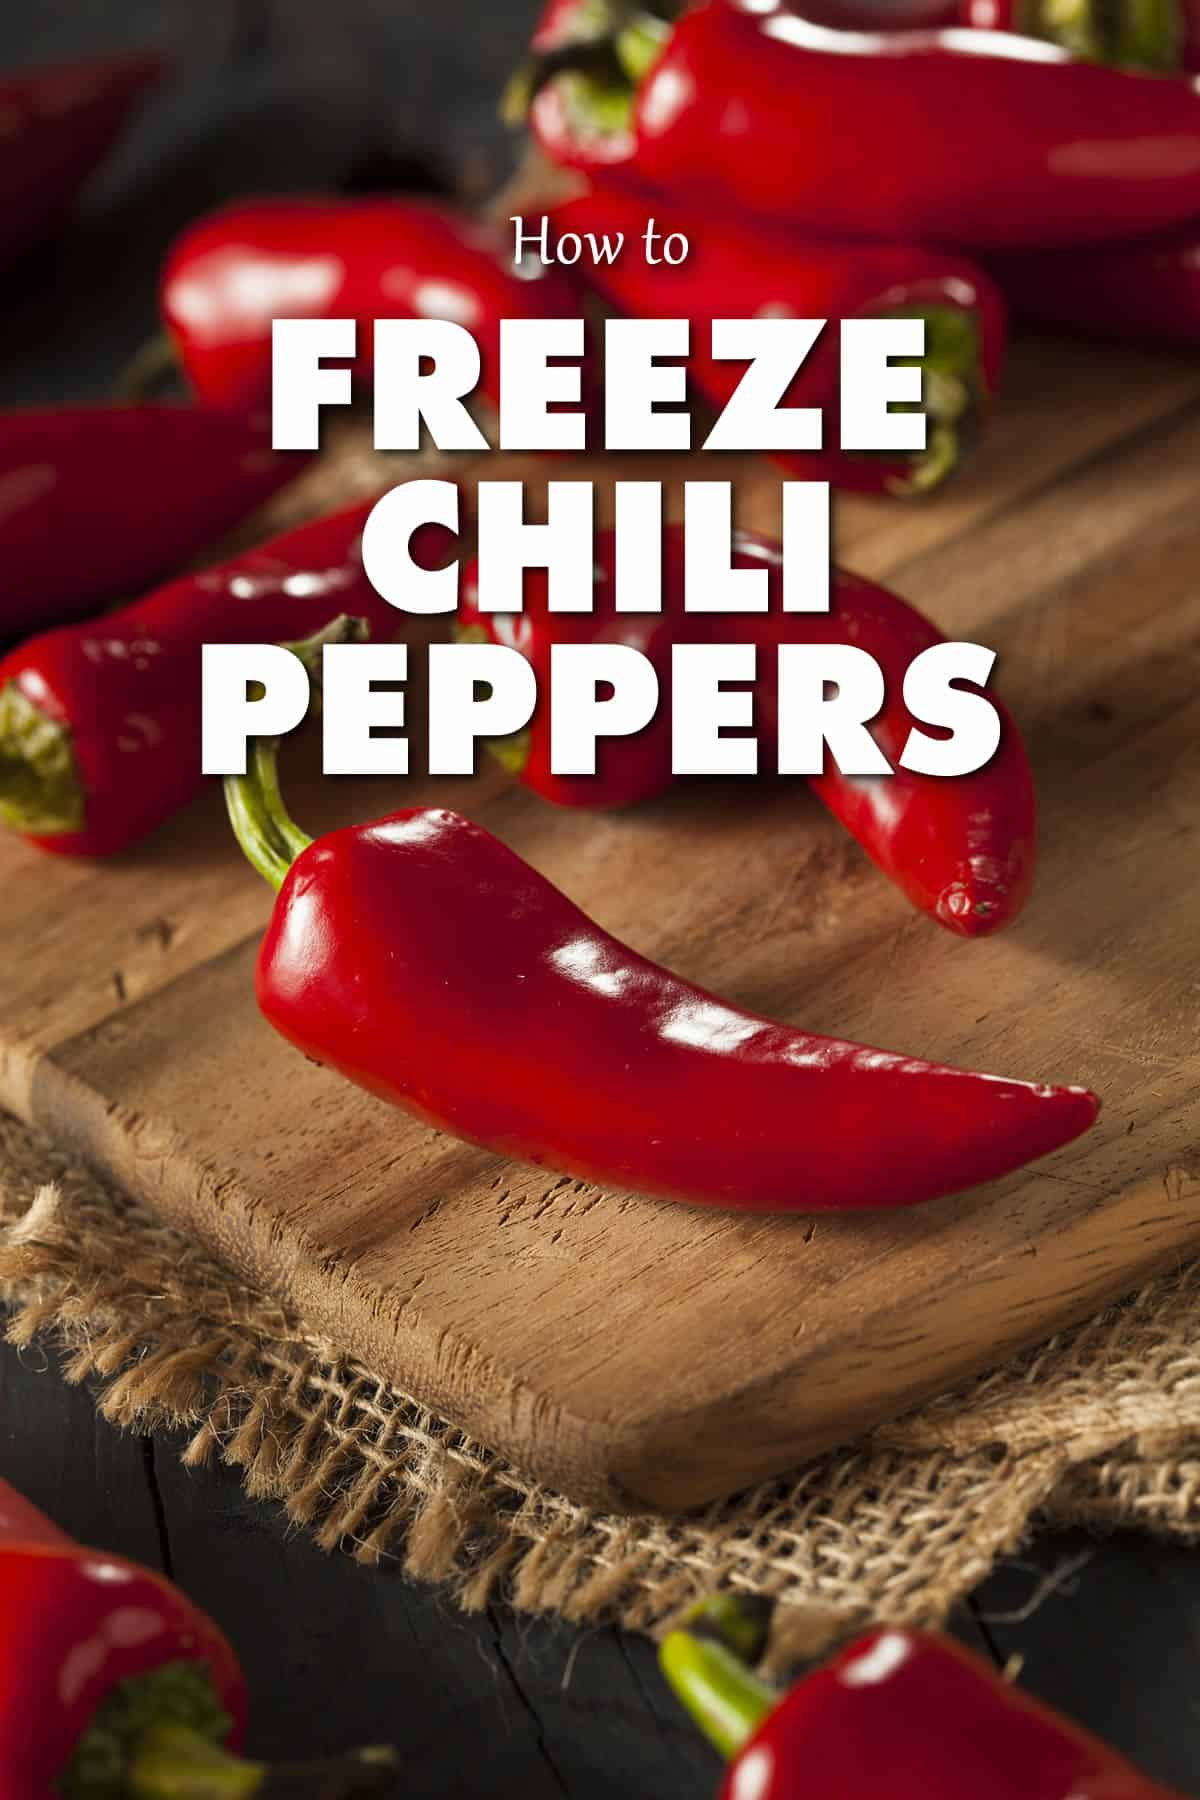 Freezing Chili Peppers: A How to Guide